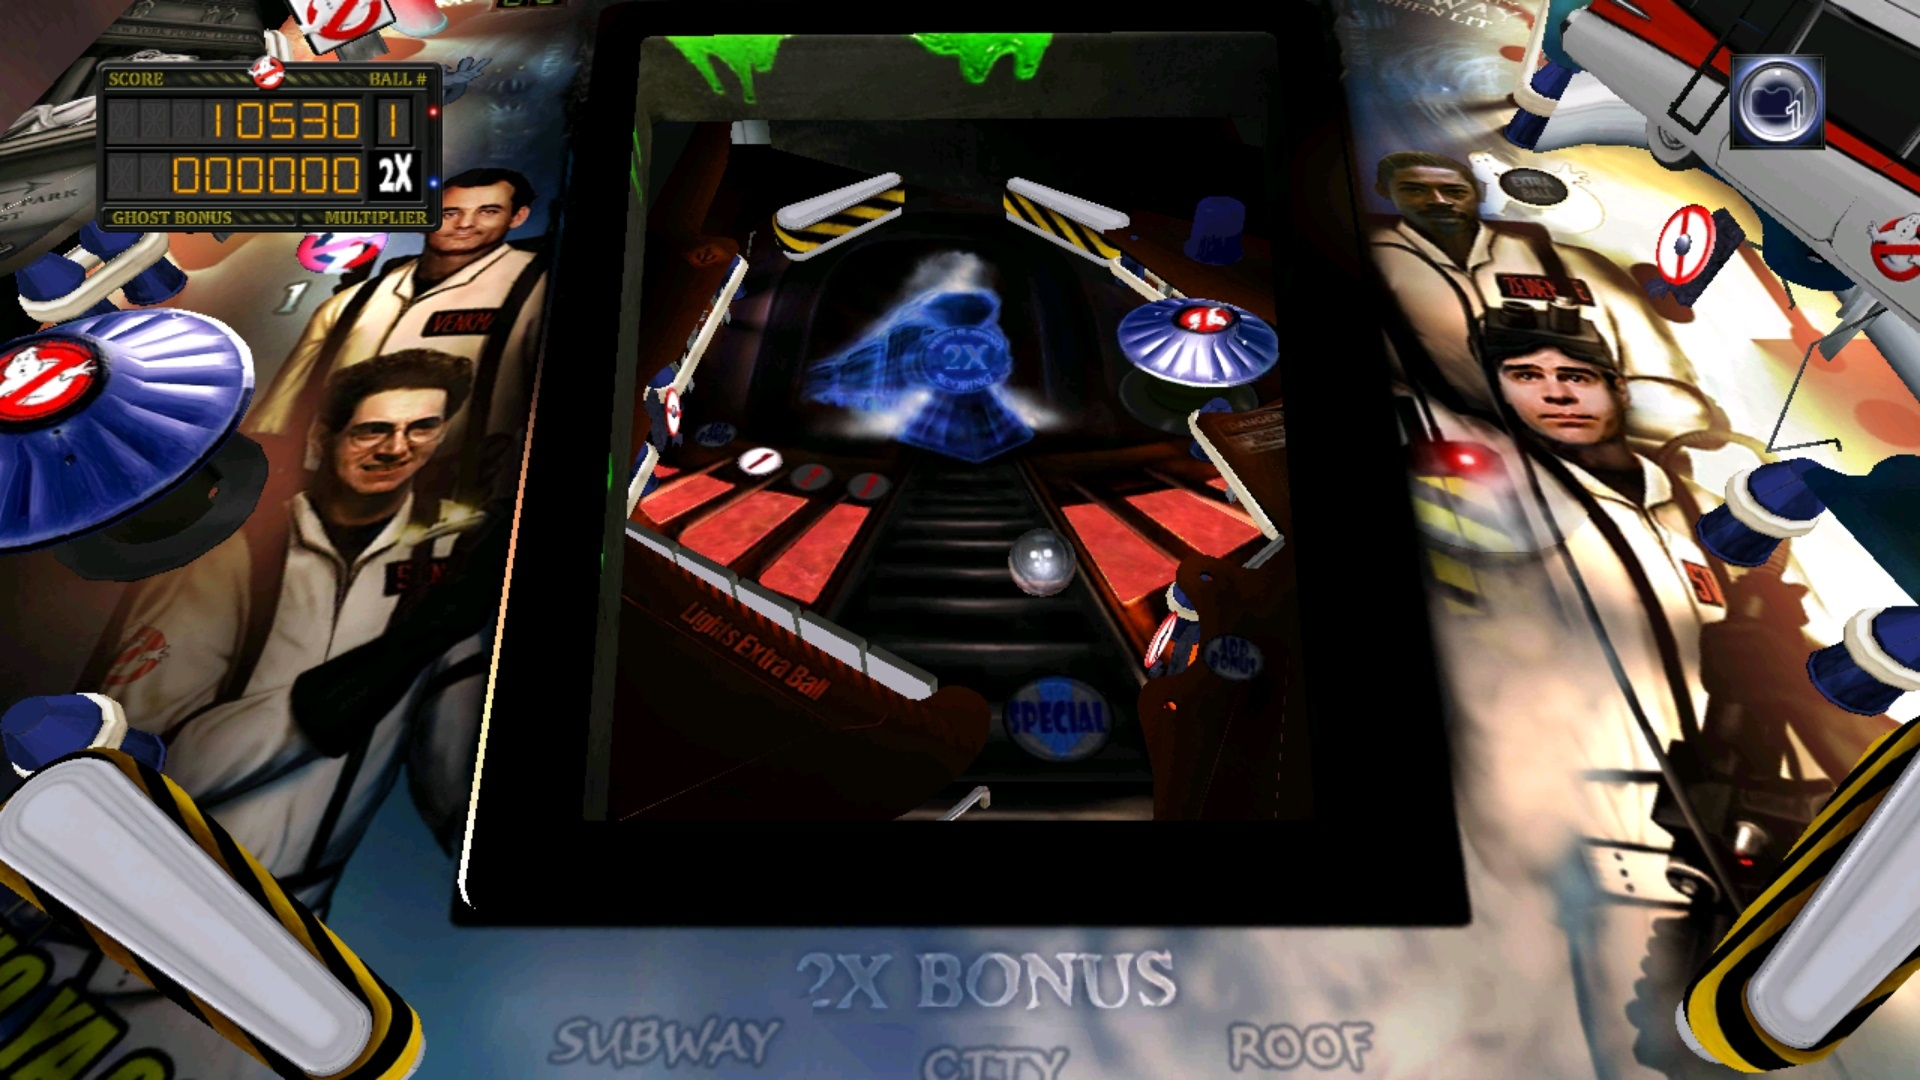 Ghostbusters Pinball screenshot